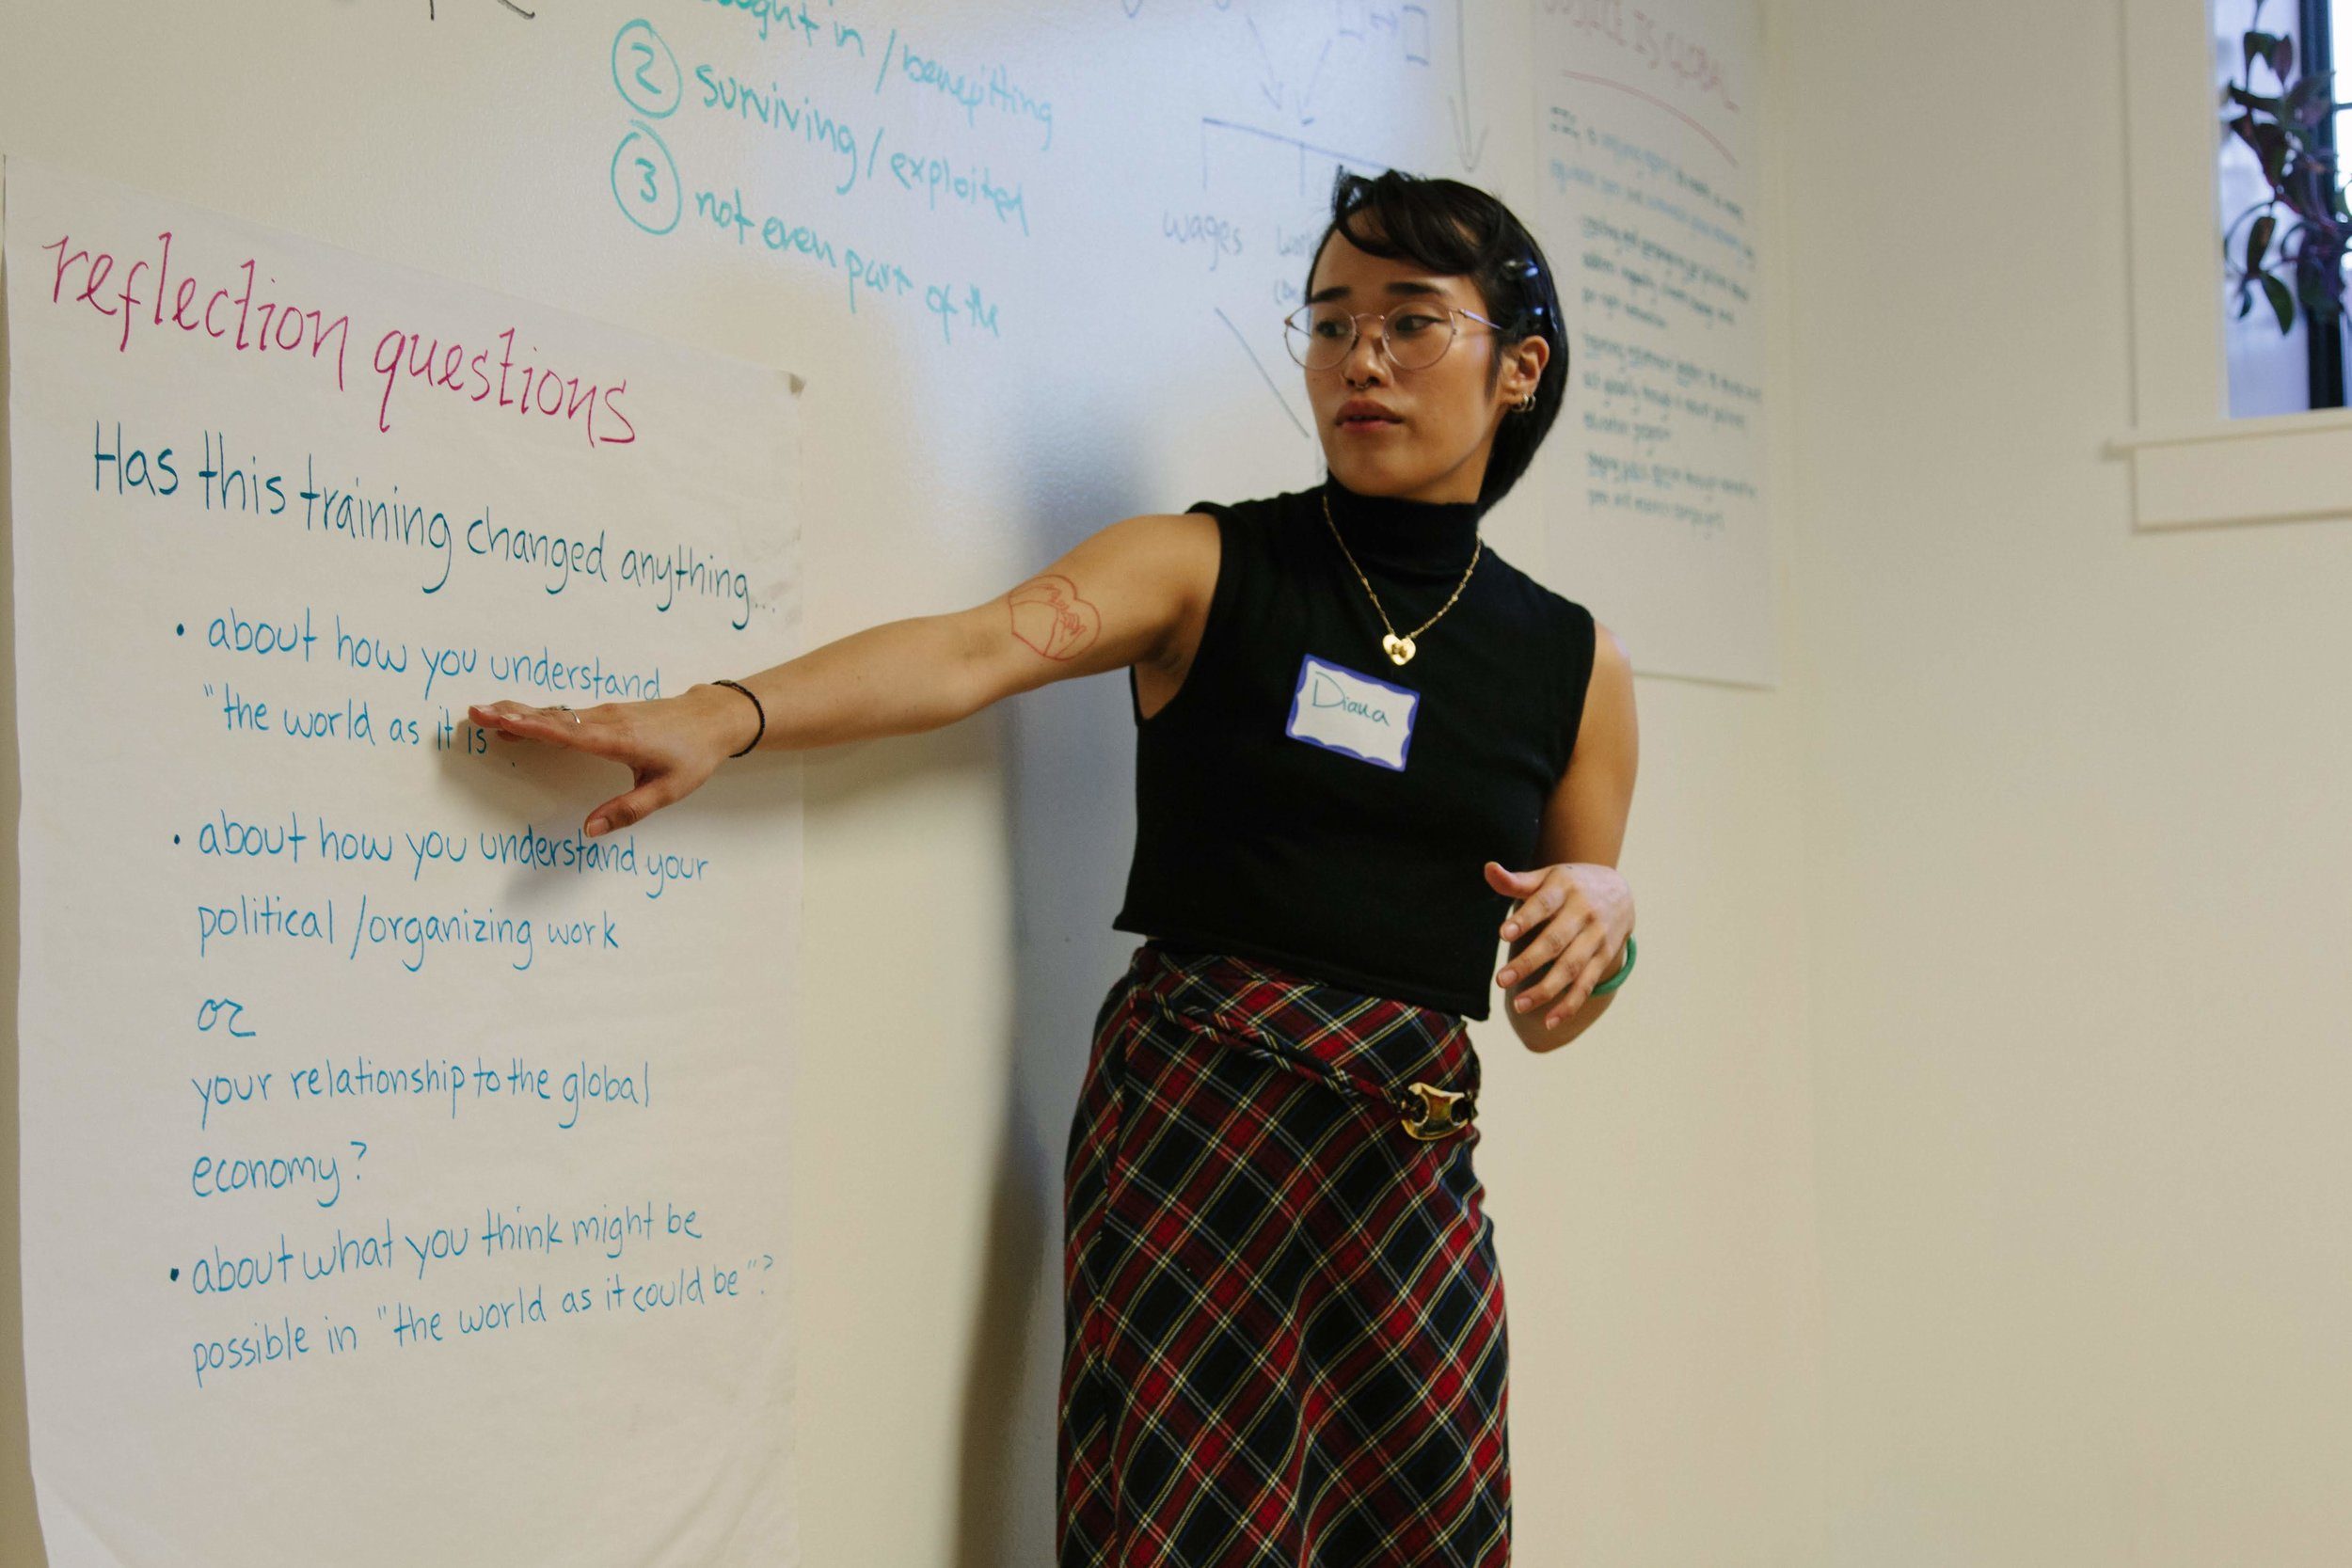 Justice is Global volunteer Diana Truong leads organizers through a reflection exercise at our Globalization 101 training.